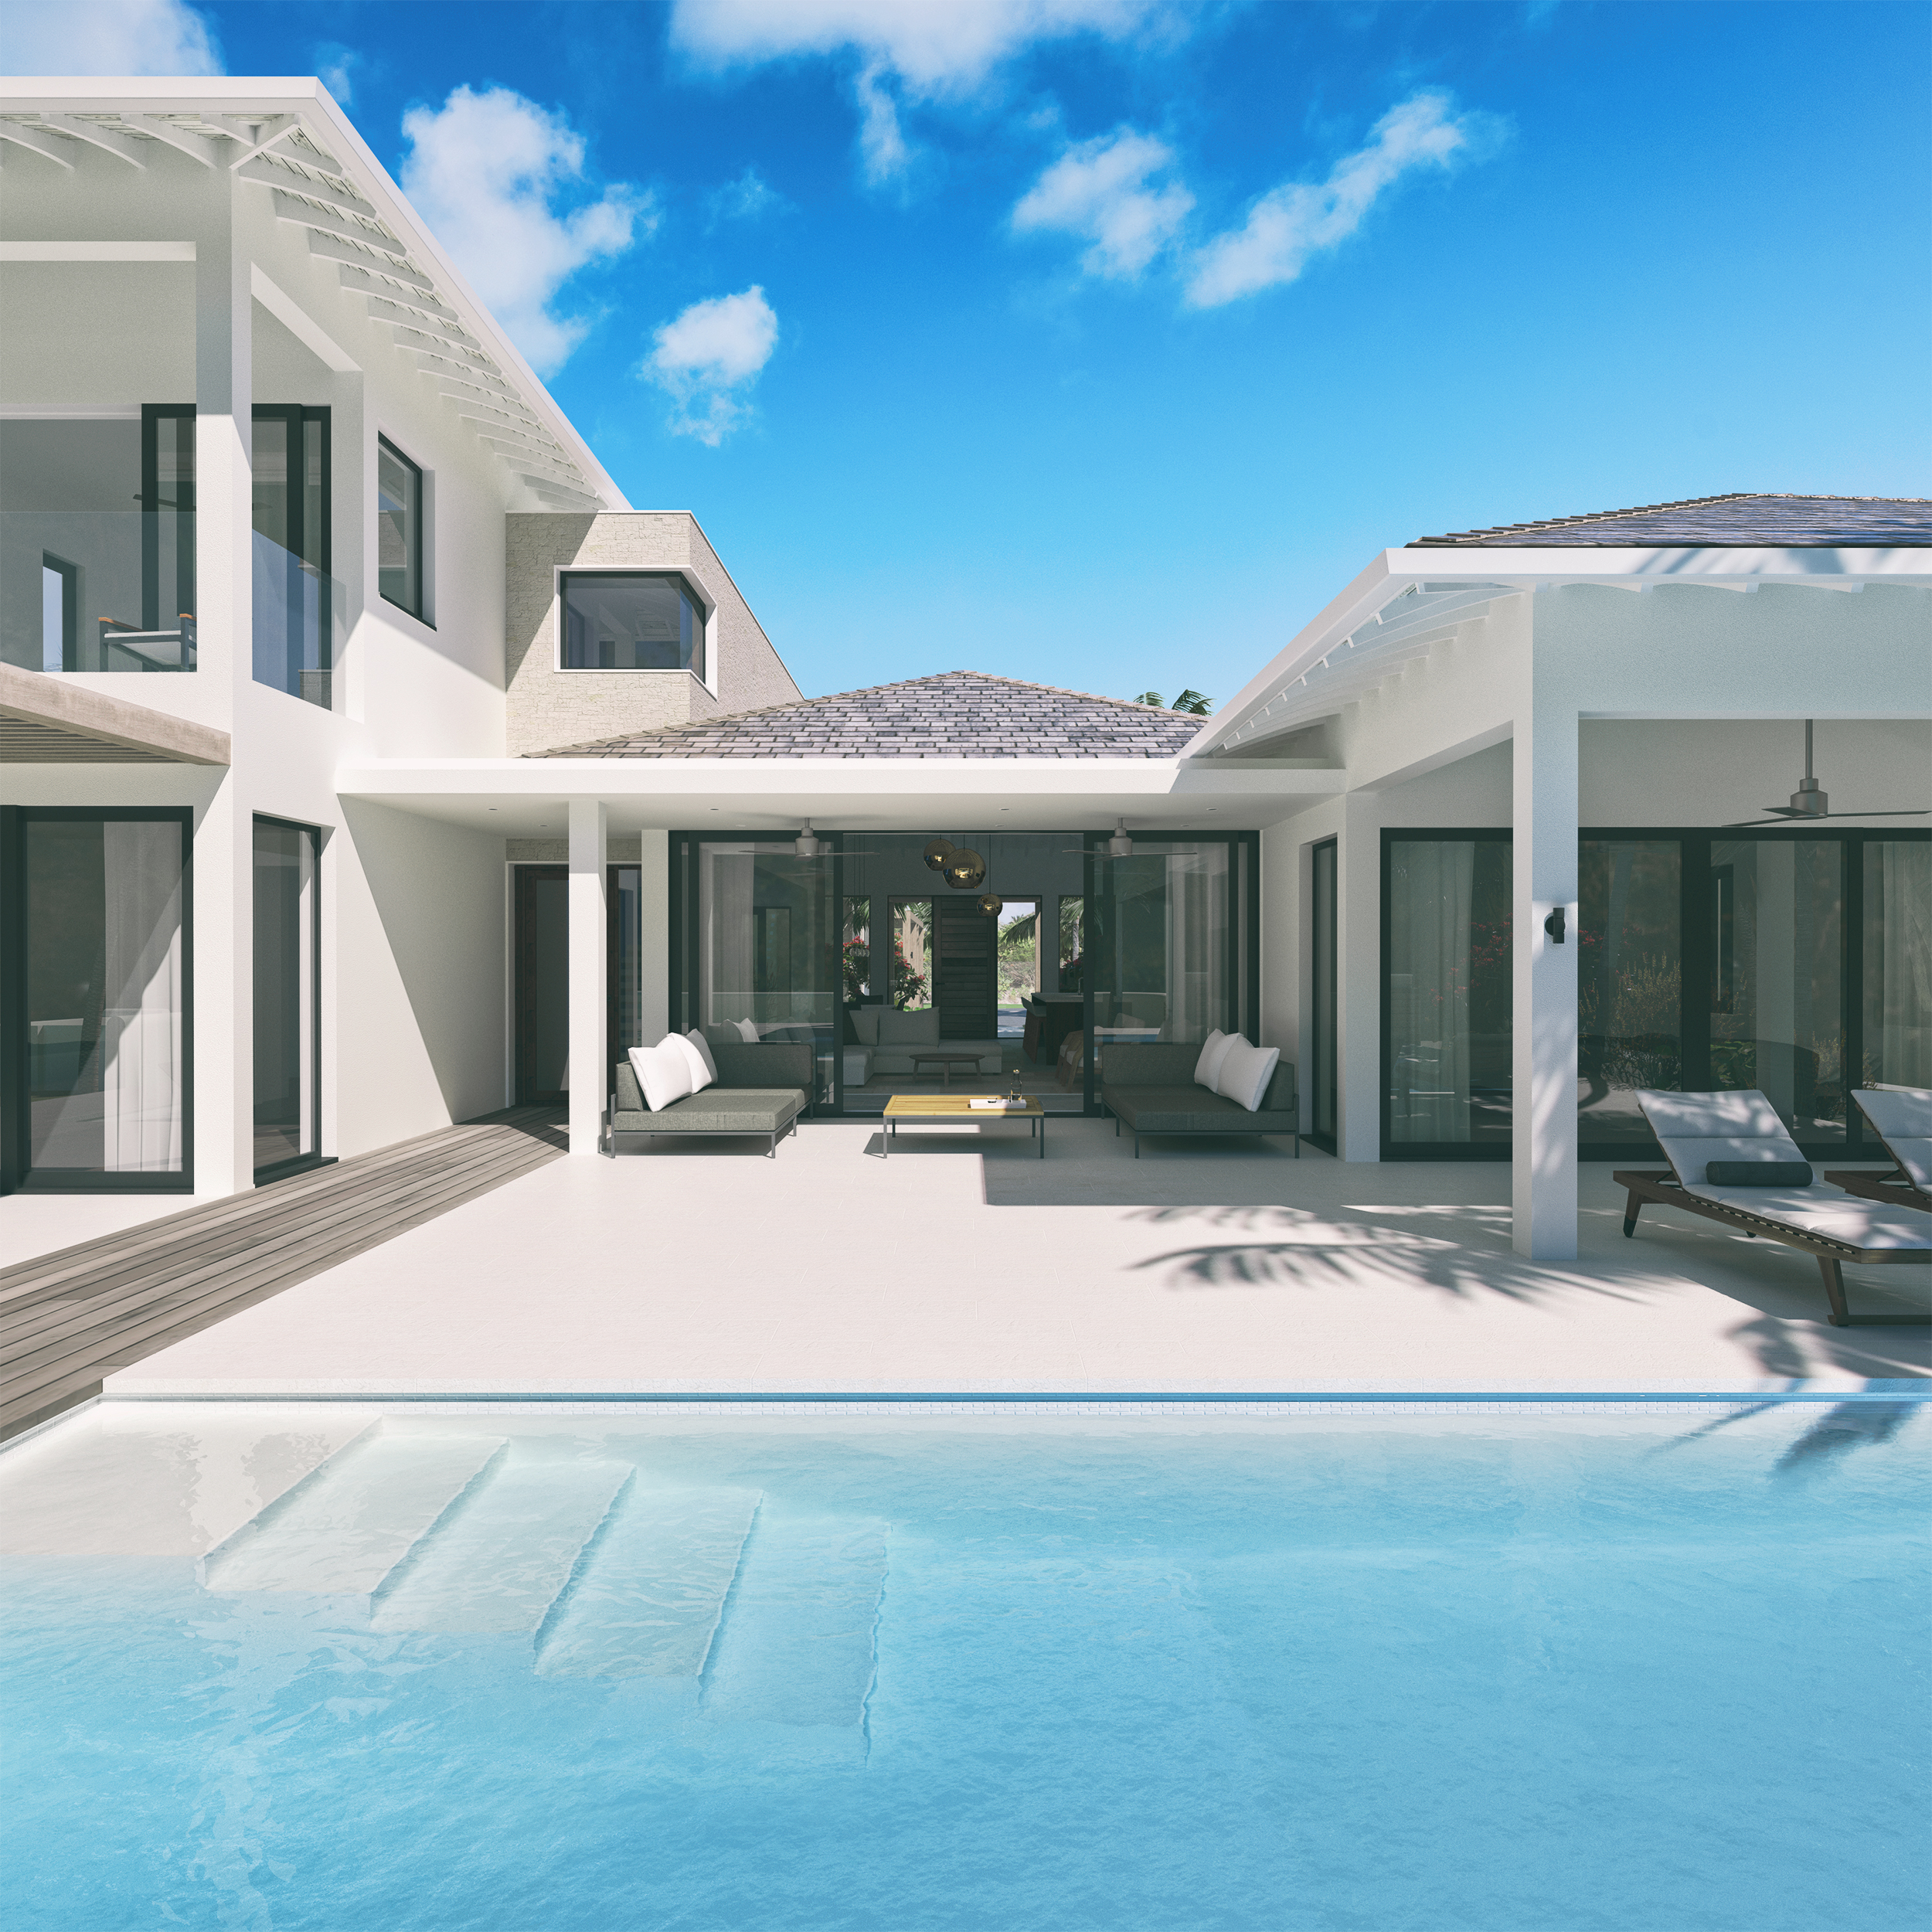 Rendered image of the swimming pool and villa